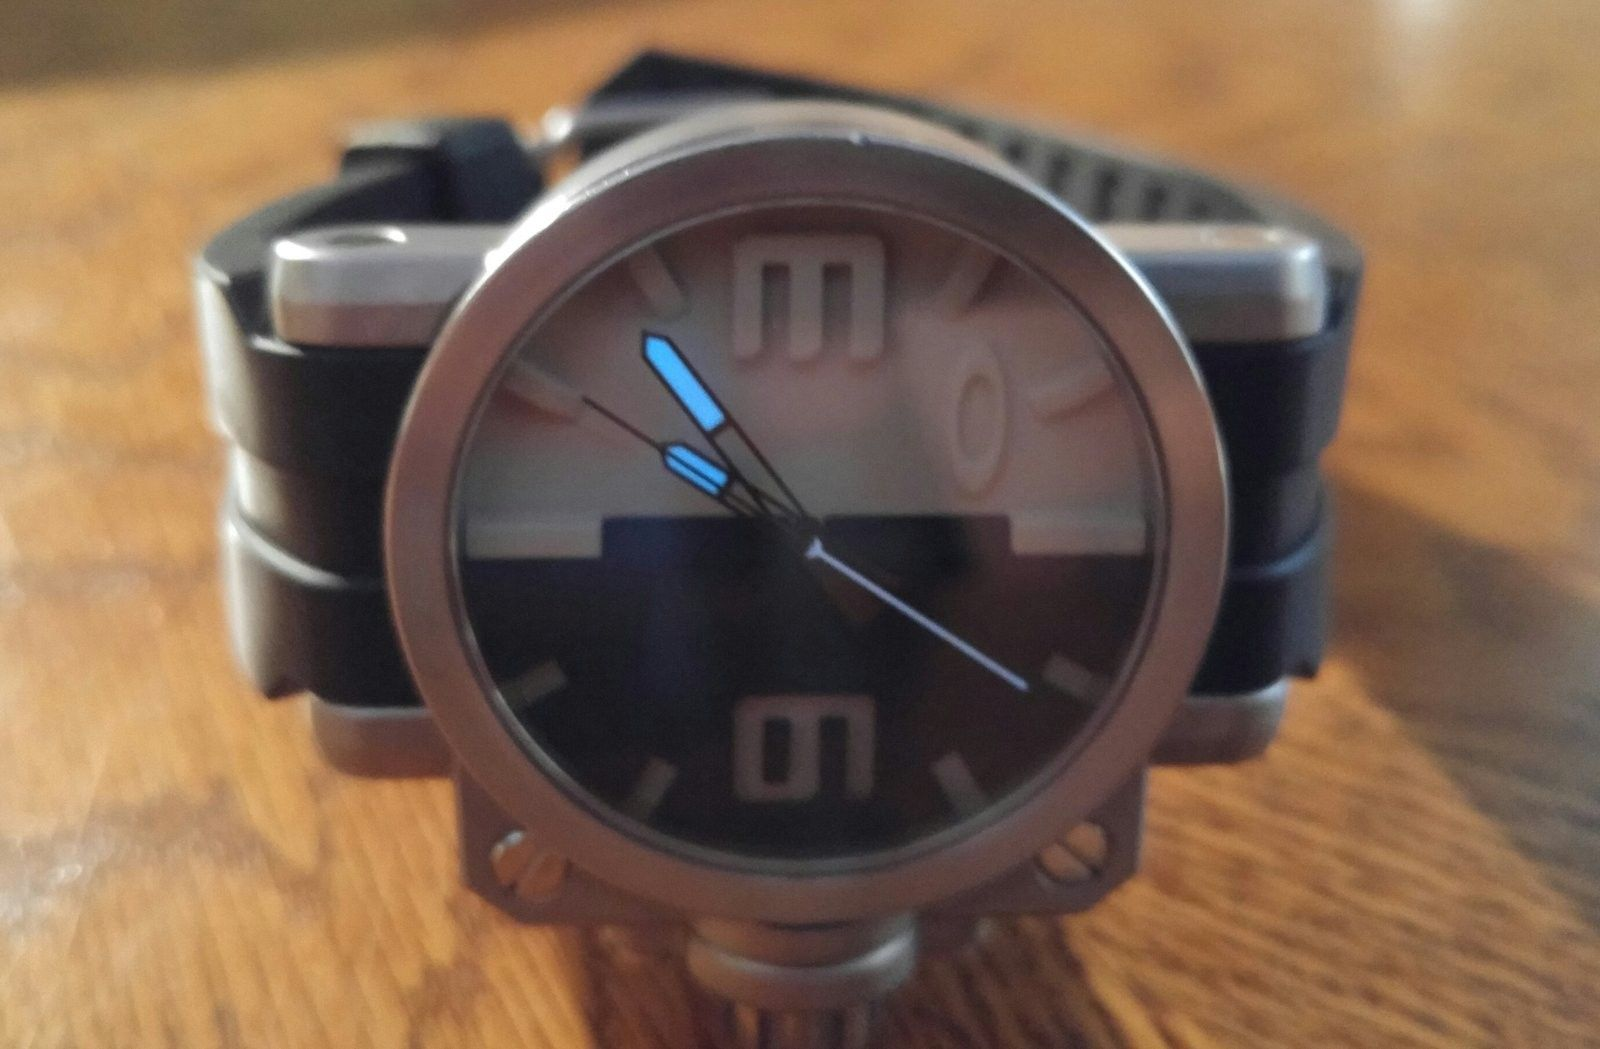 Gearbox Watch - 20160717_130910-1.jpg